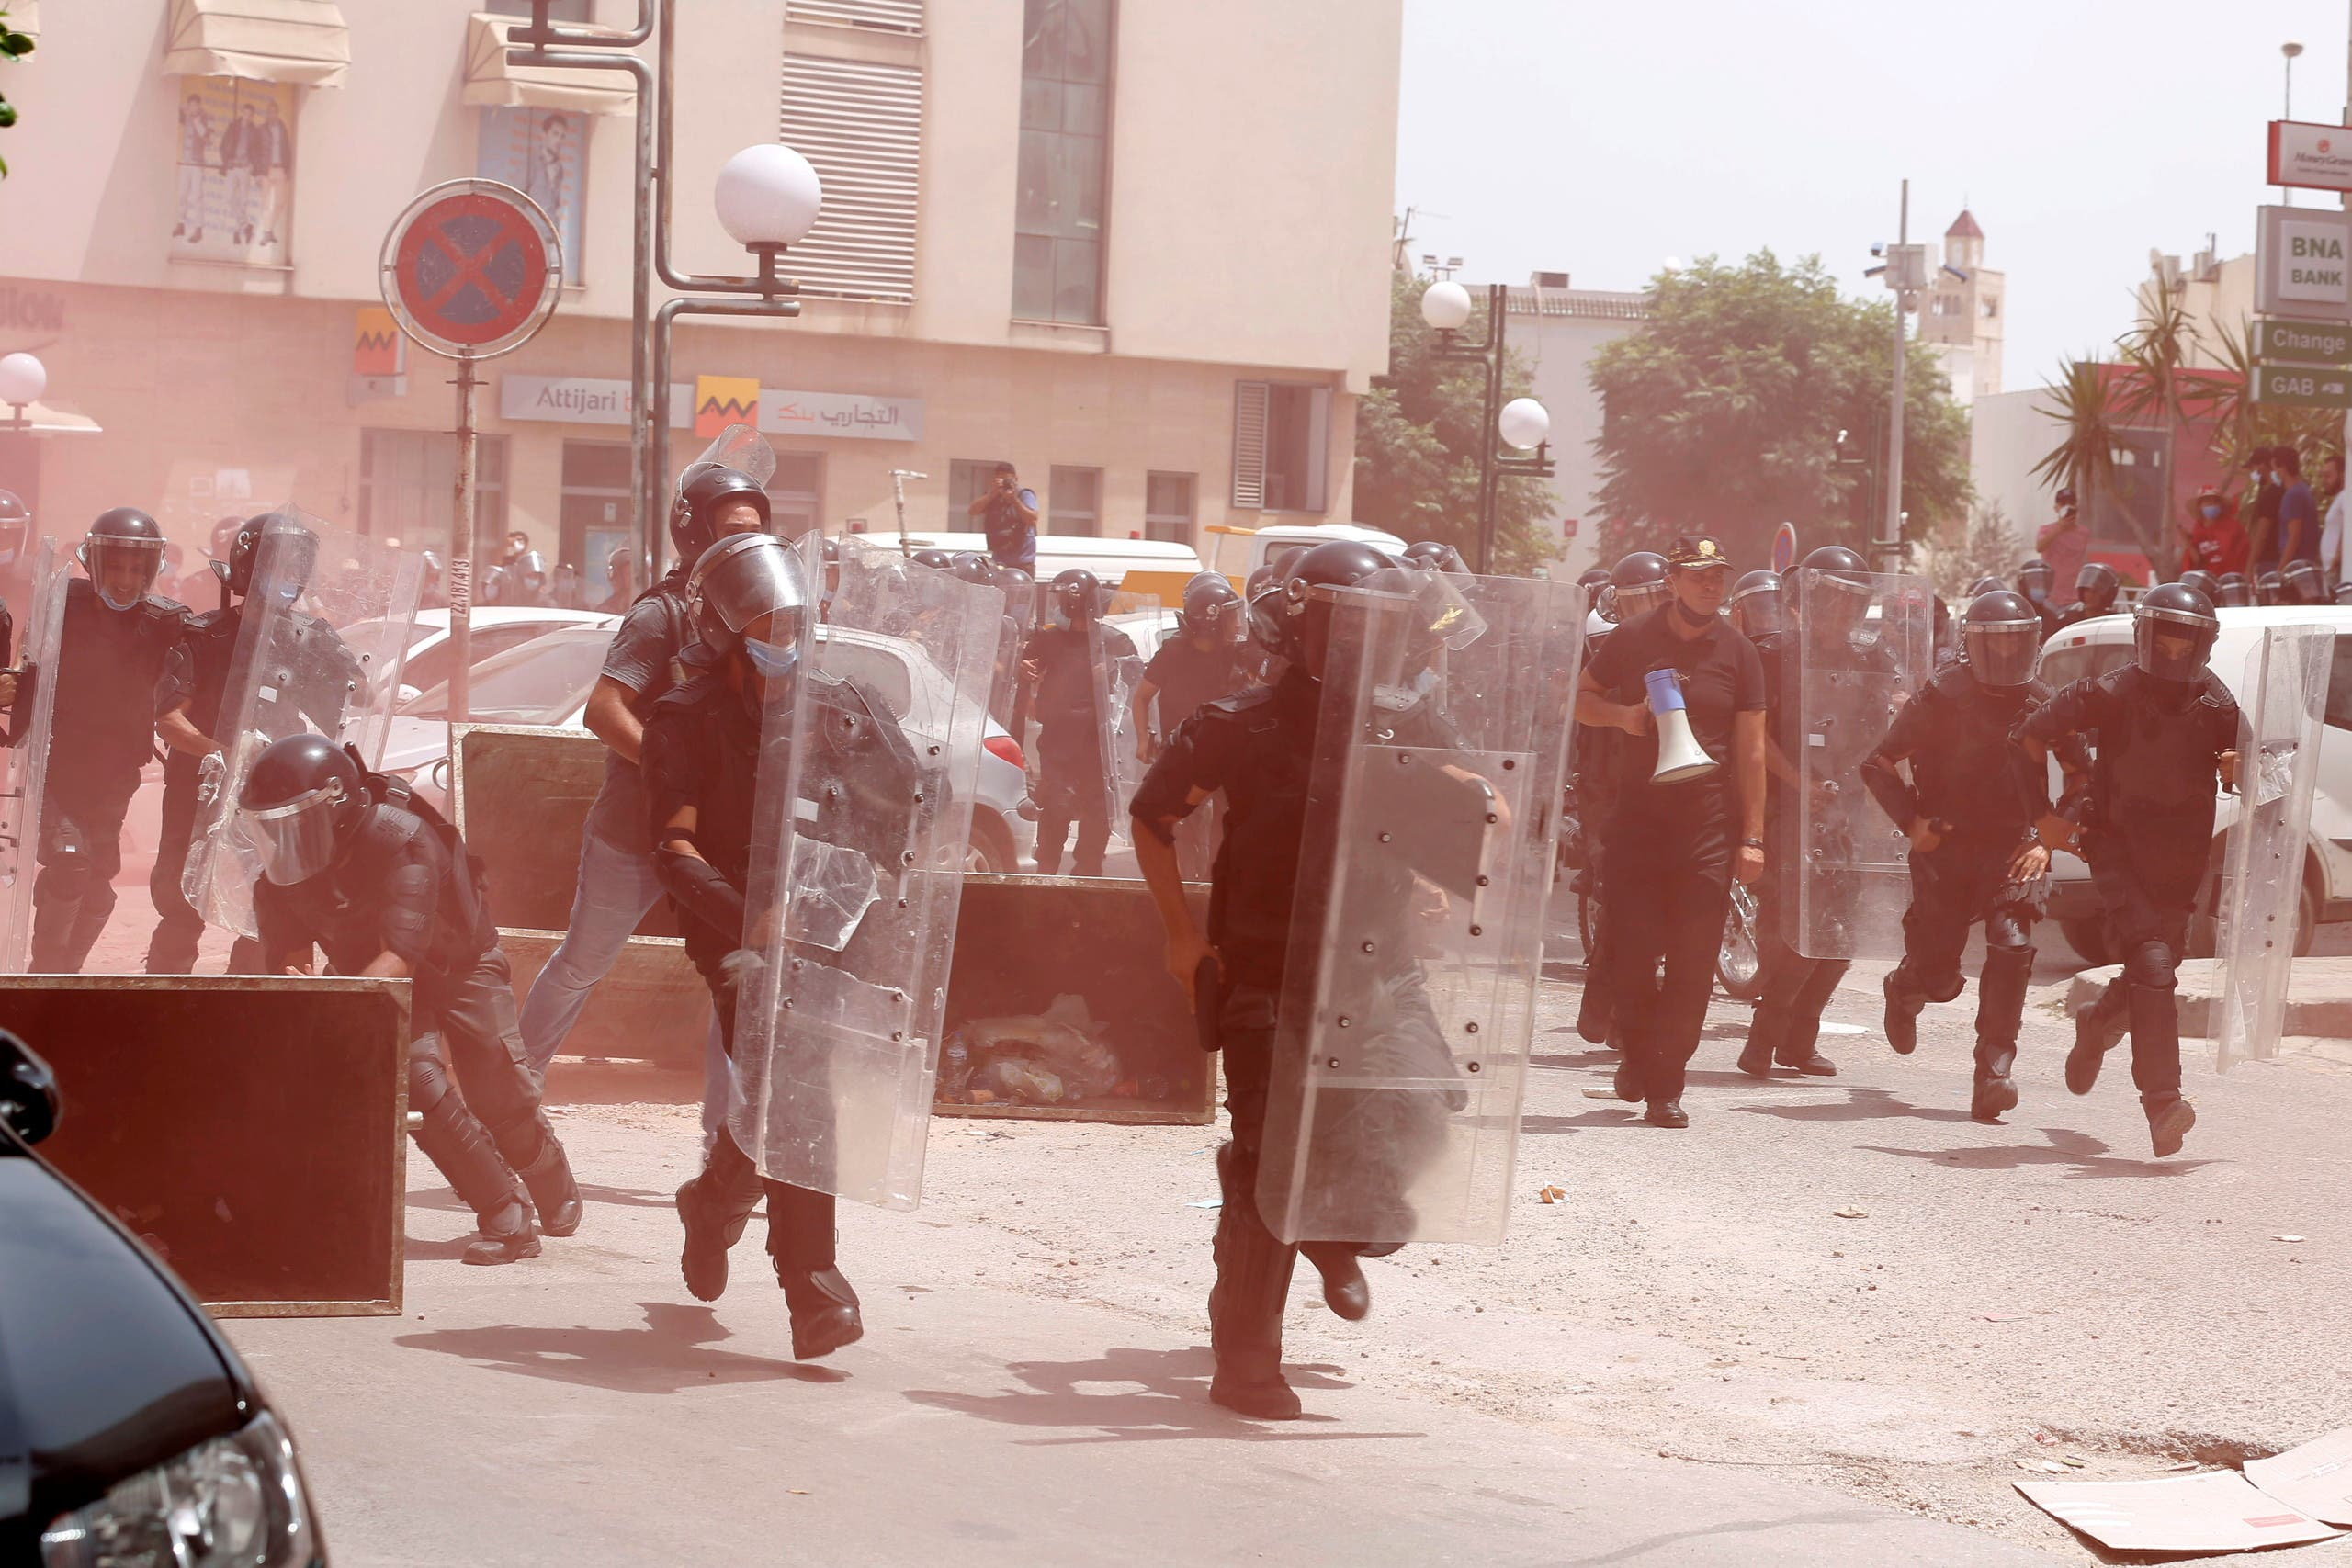 Police officers run towards demonstrators during an anti-government protest in Tunis, Tunisia, July 25, 2021. (Reuters)